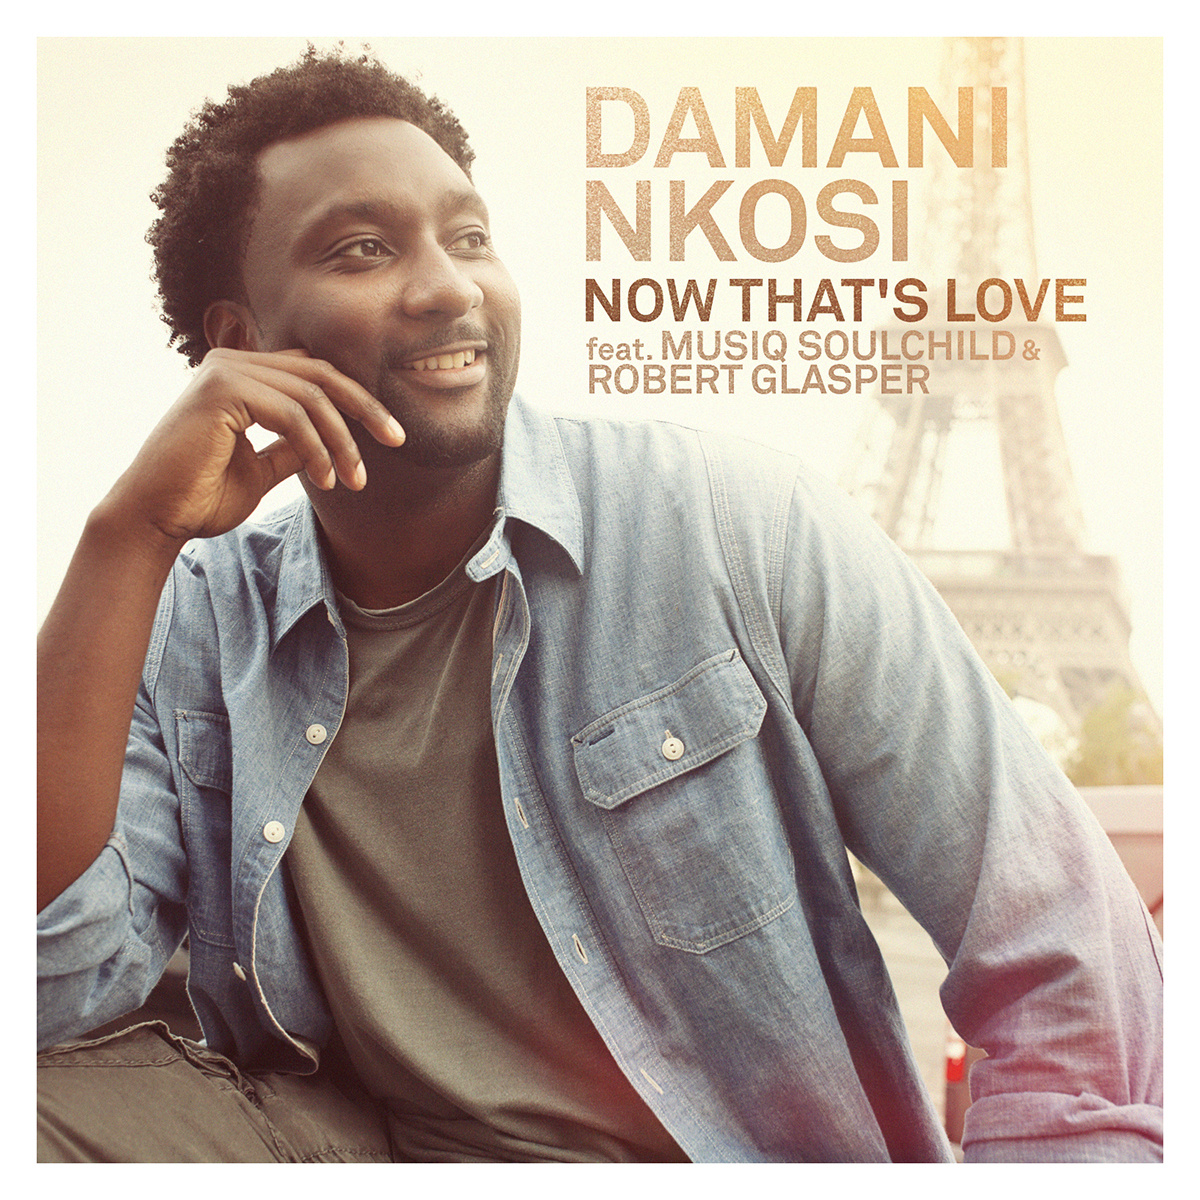 Damani Nkosi – Now That's Love Ft. Musiq Soulchild & Robert Glasper